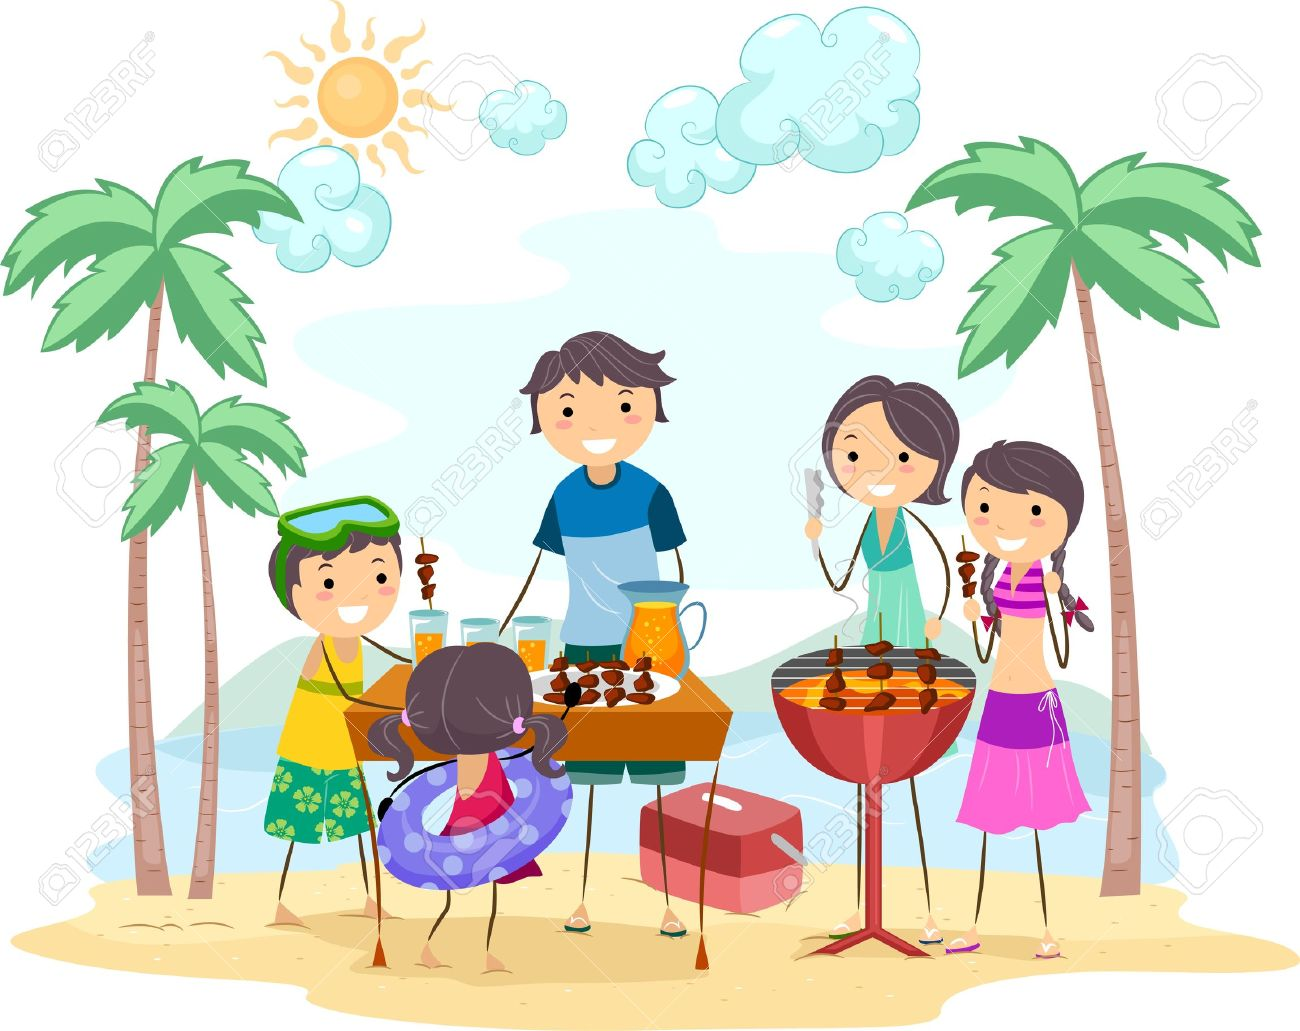 Illustration of a Family Outing Stock Illustration - 9991453